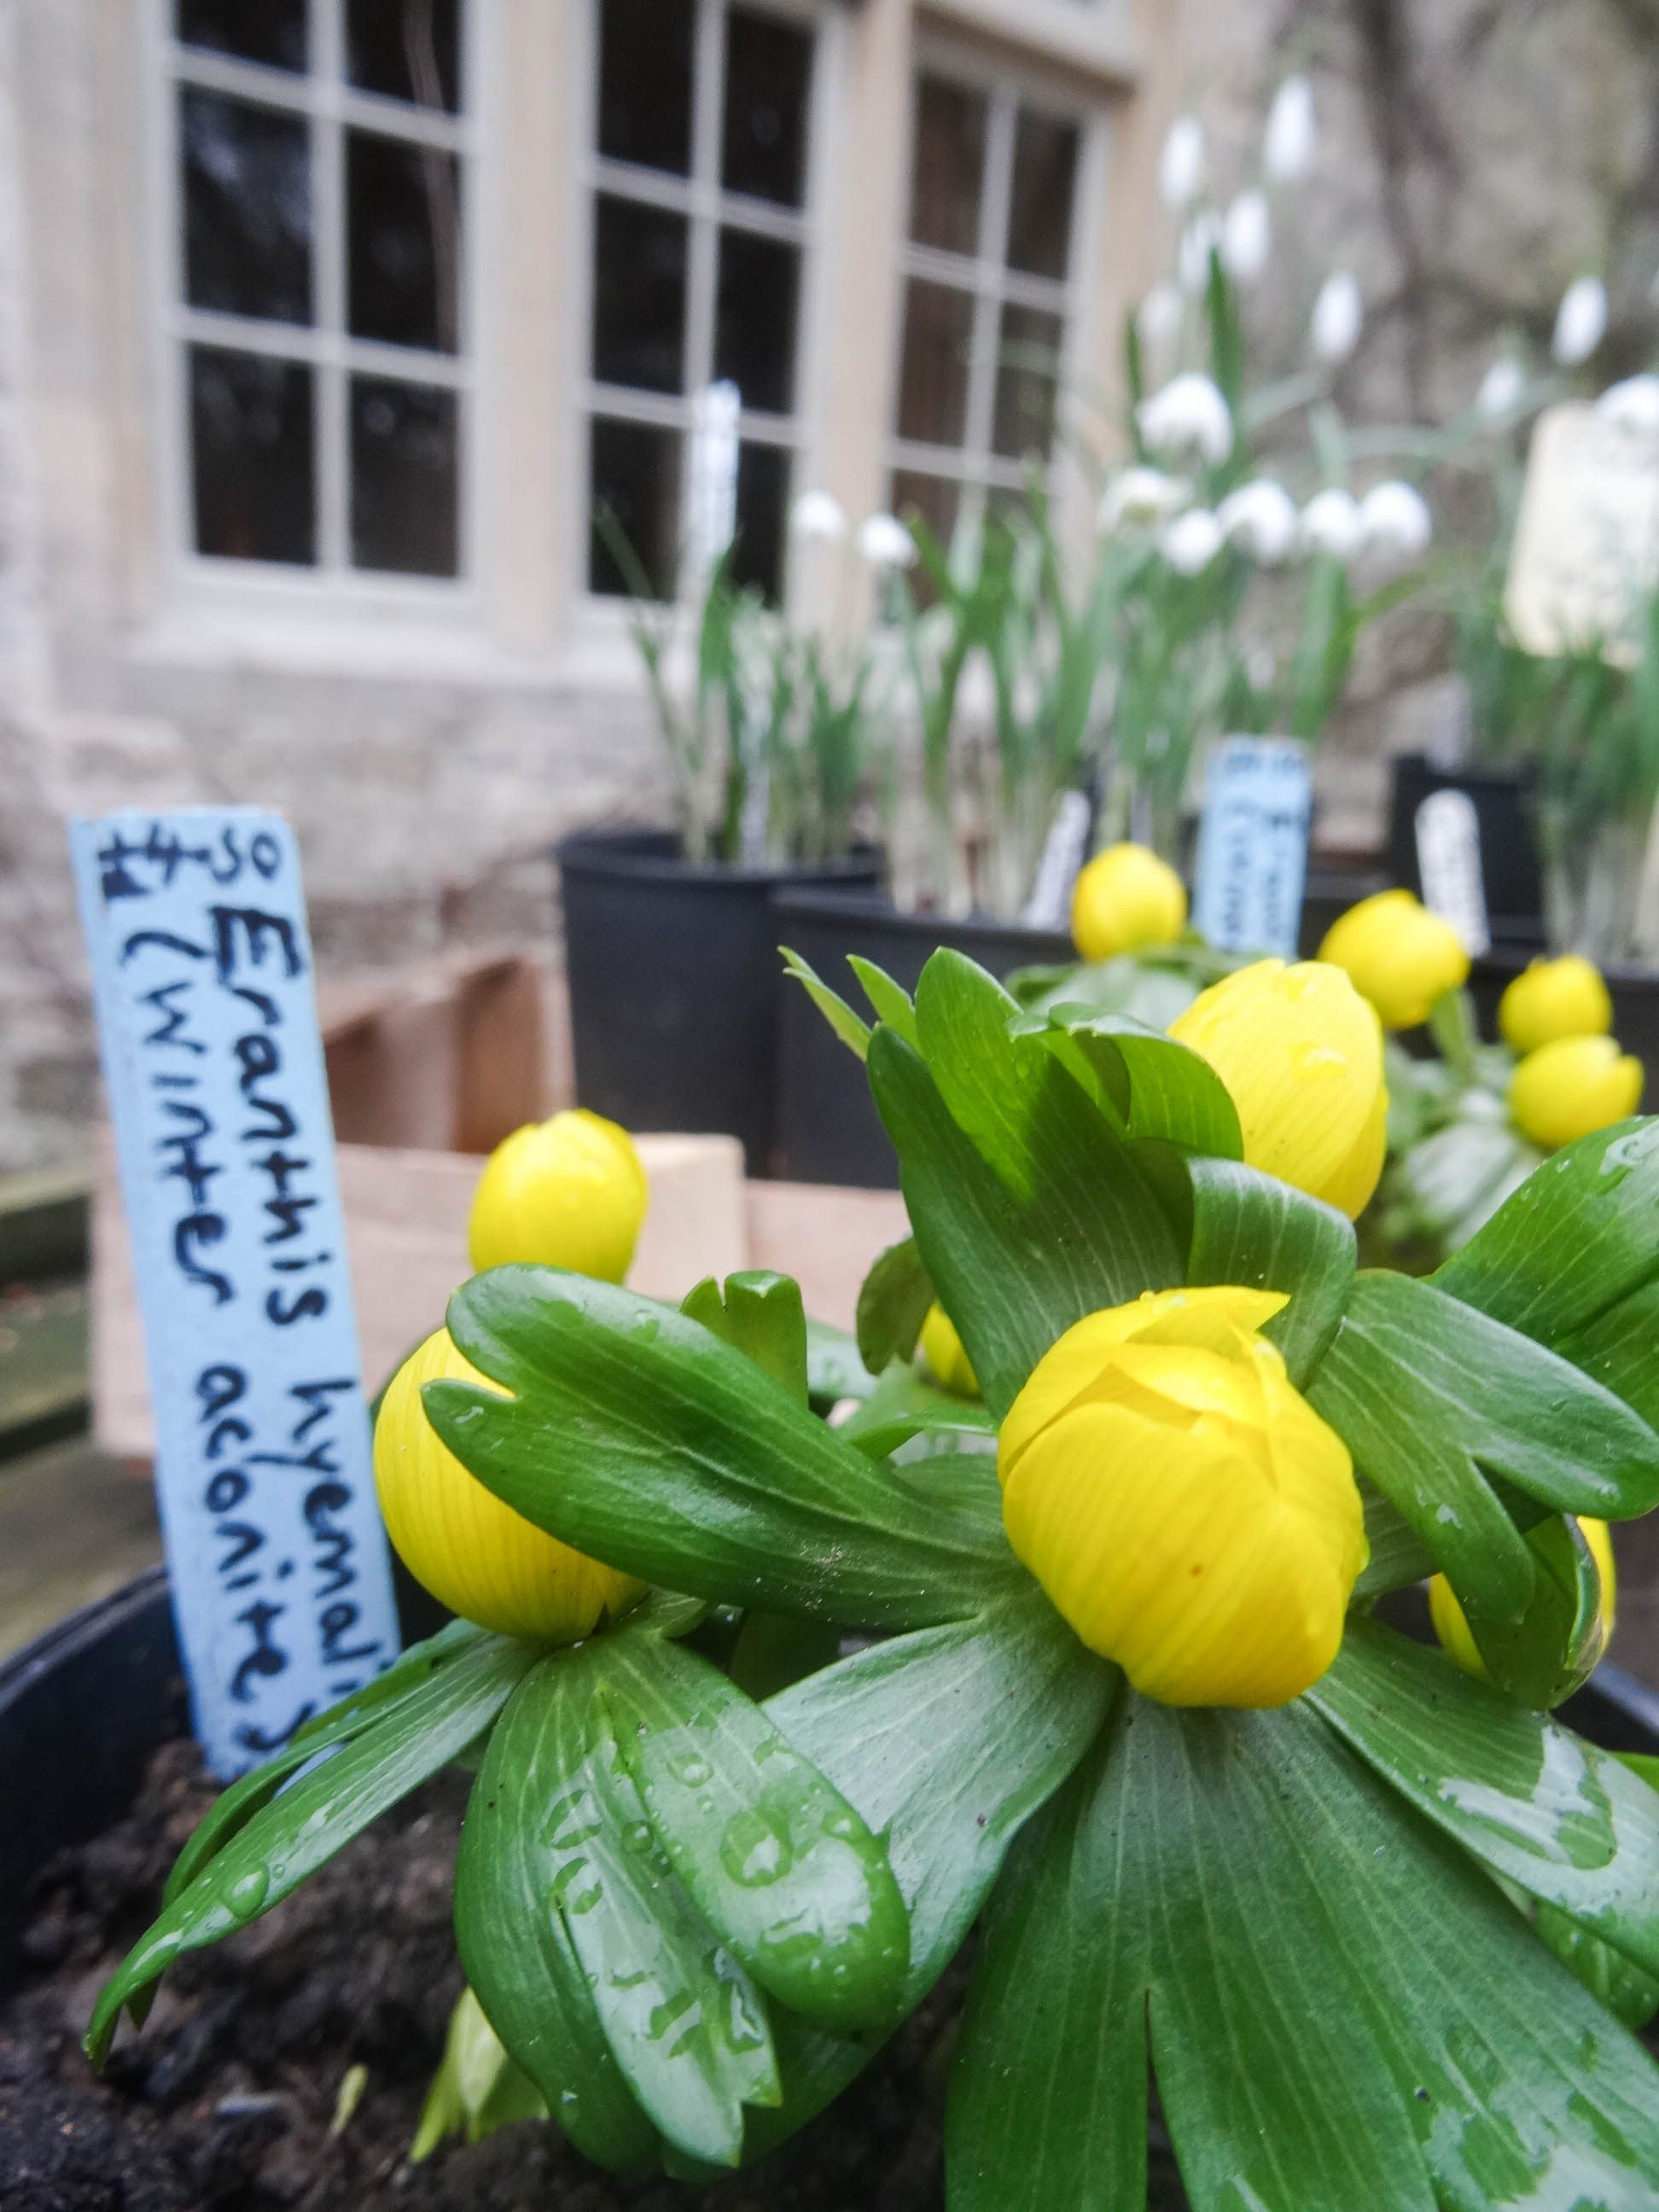 Winter aconites and snowdrops on display on the barrow at the entrance to Barnsley House Hotel